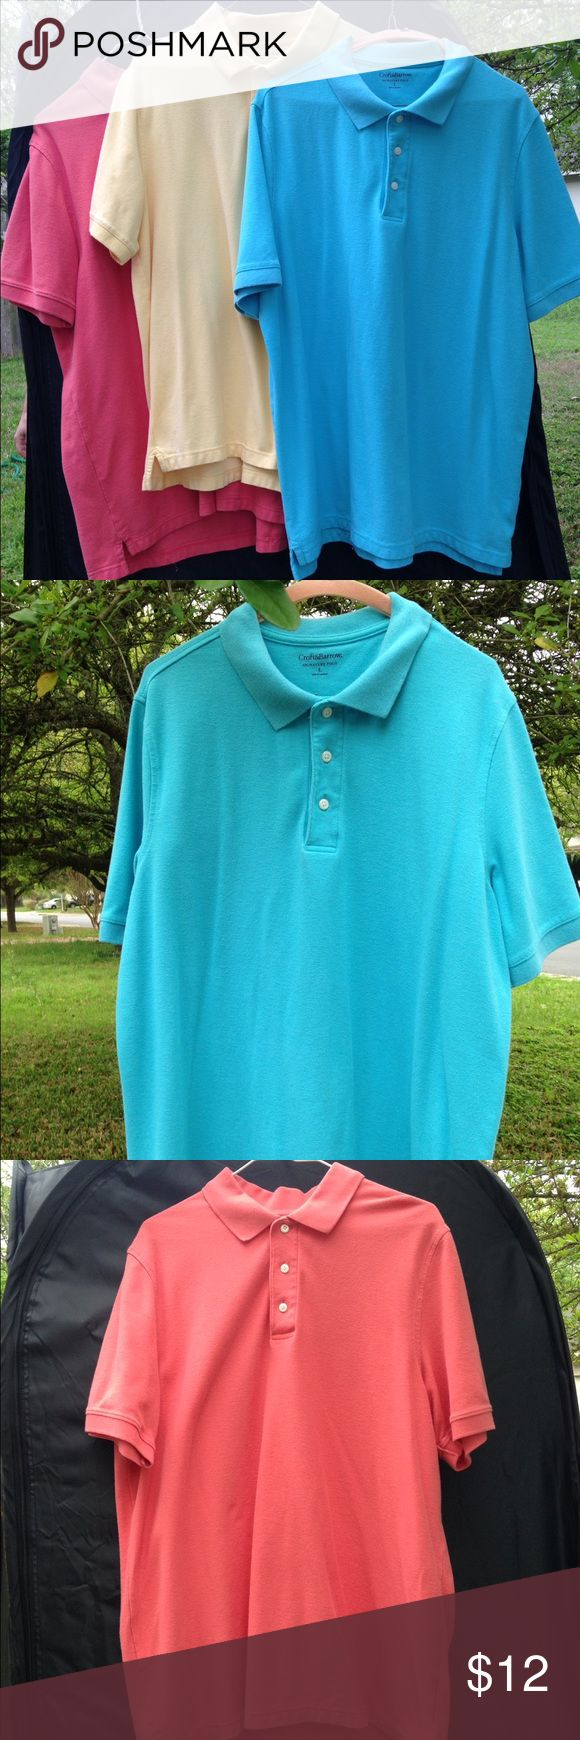 MEN'S POLO SHIRT BUNDLE LARGE Turquoise, yellow and coral colors. Used. Has minor staining on the front of turquoise. Two by Croft & Barrow, one by Sonoma. All size Large. Shirts Polos